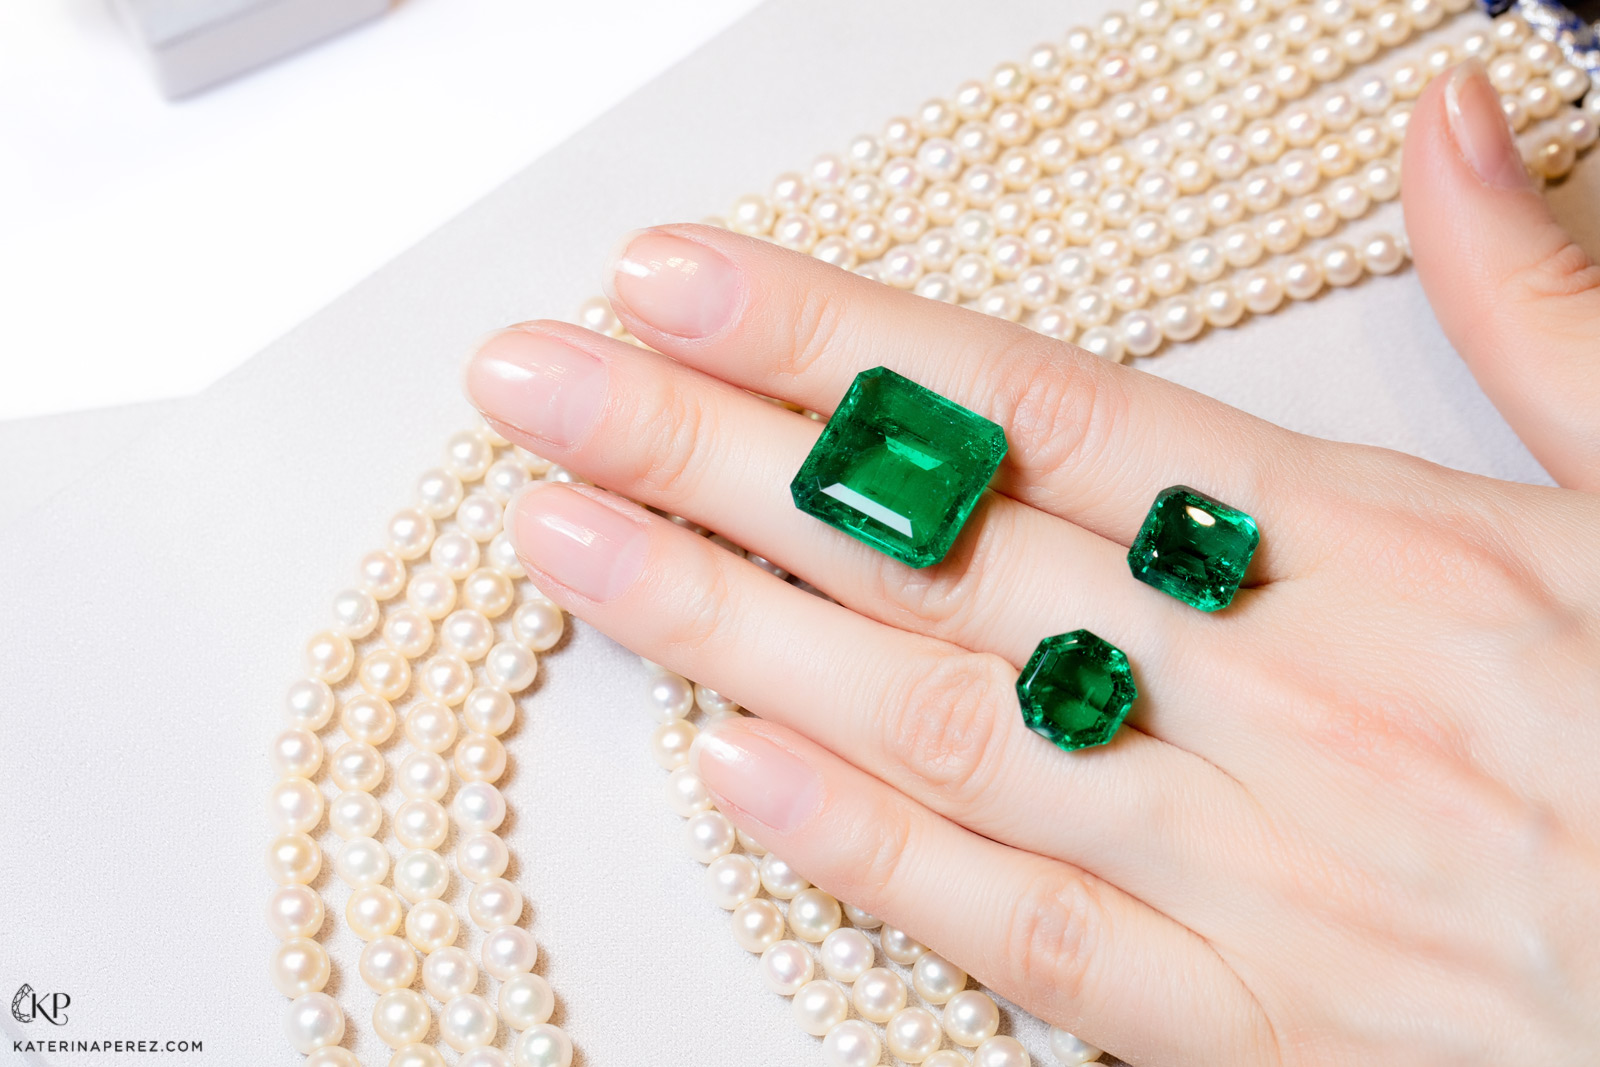 Emeralds cut and polished at Dharmendra Tank's factory in Jaipur. Photo by Simon Martner.